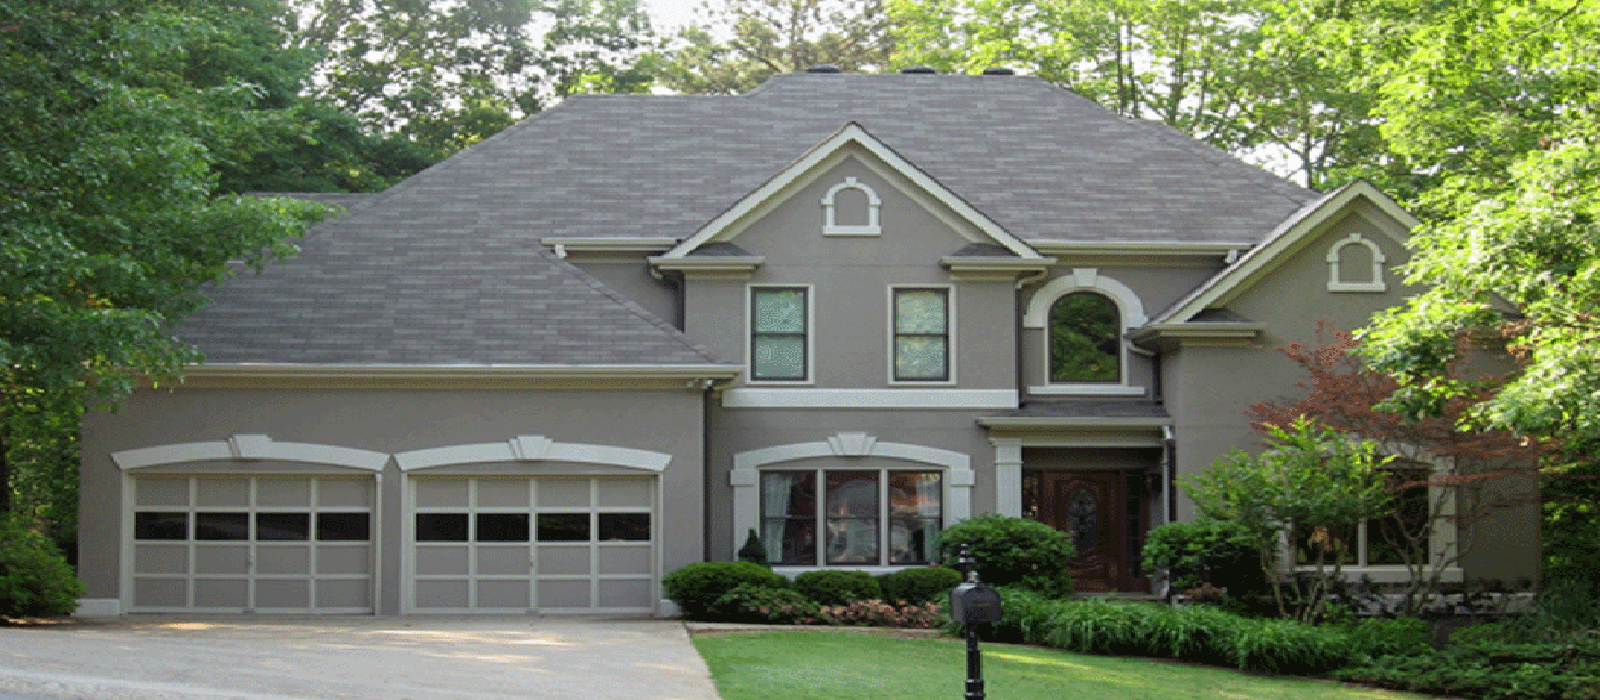 Painters Overland Park KS Exterior House Painting Contractors